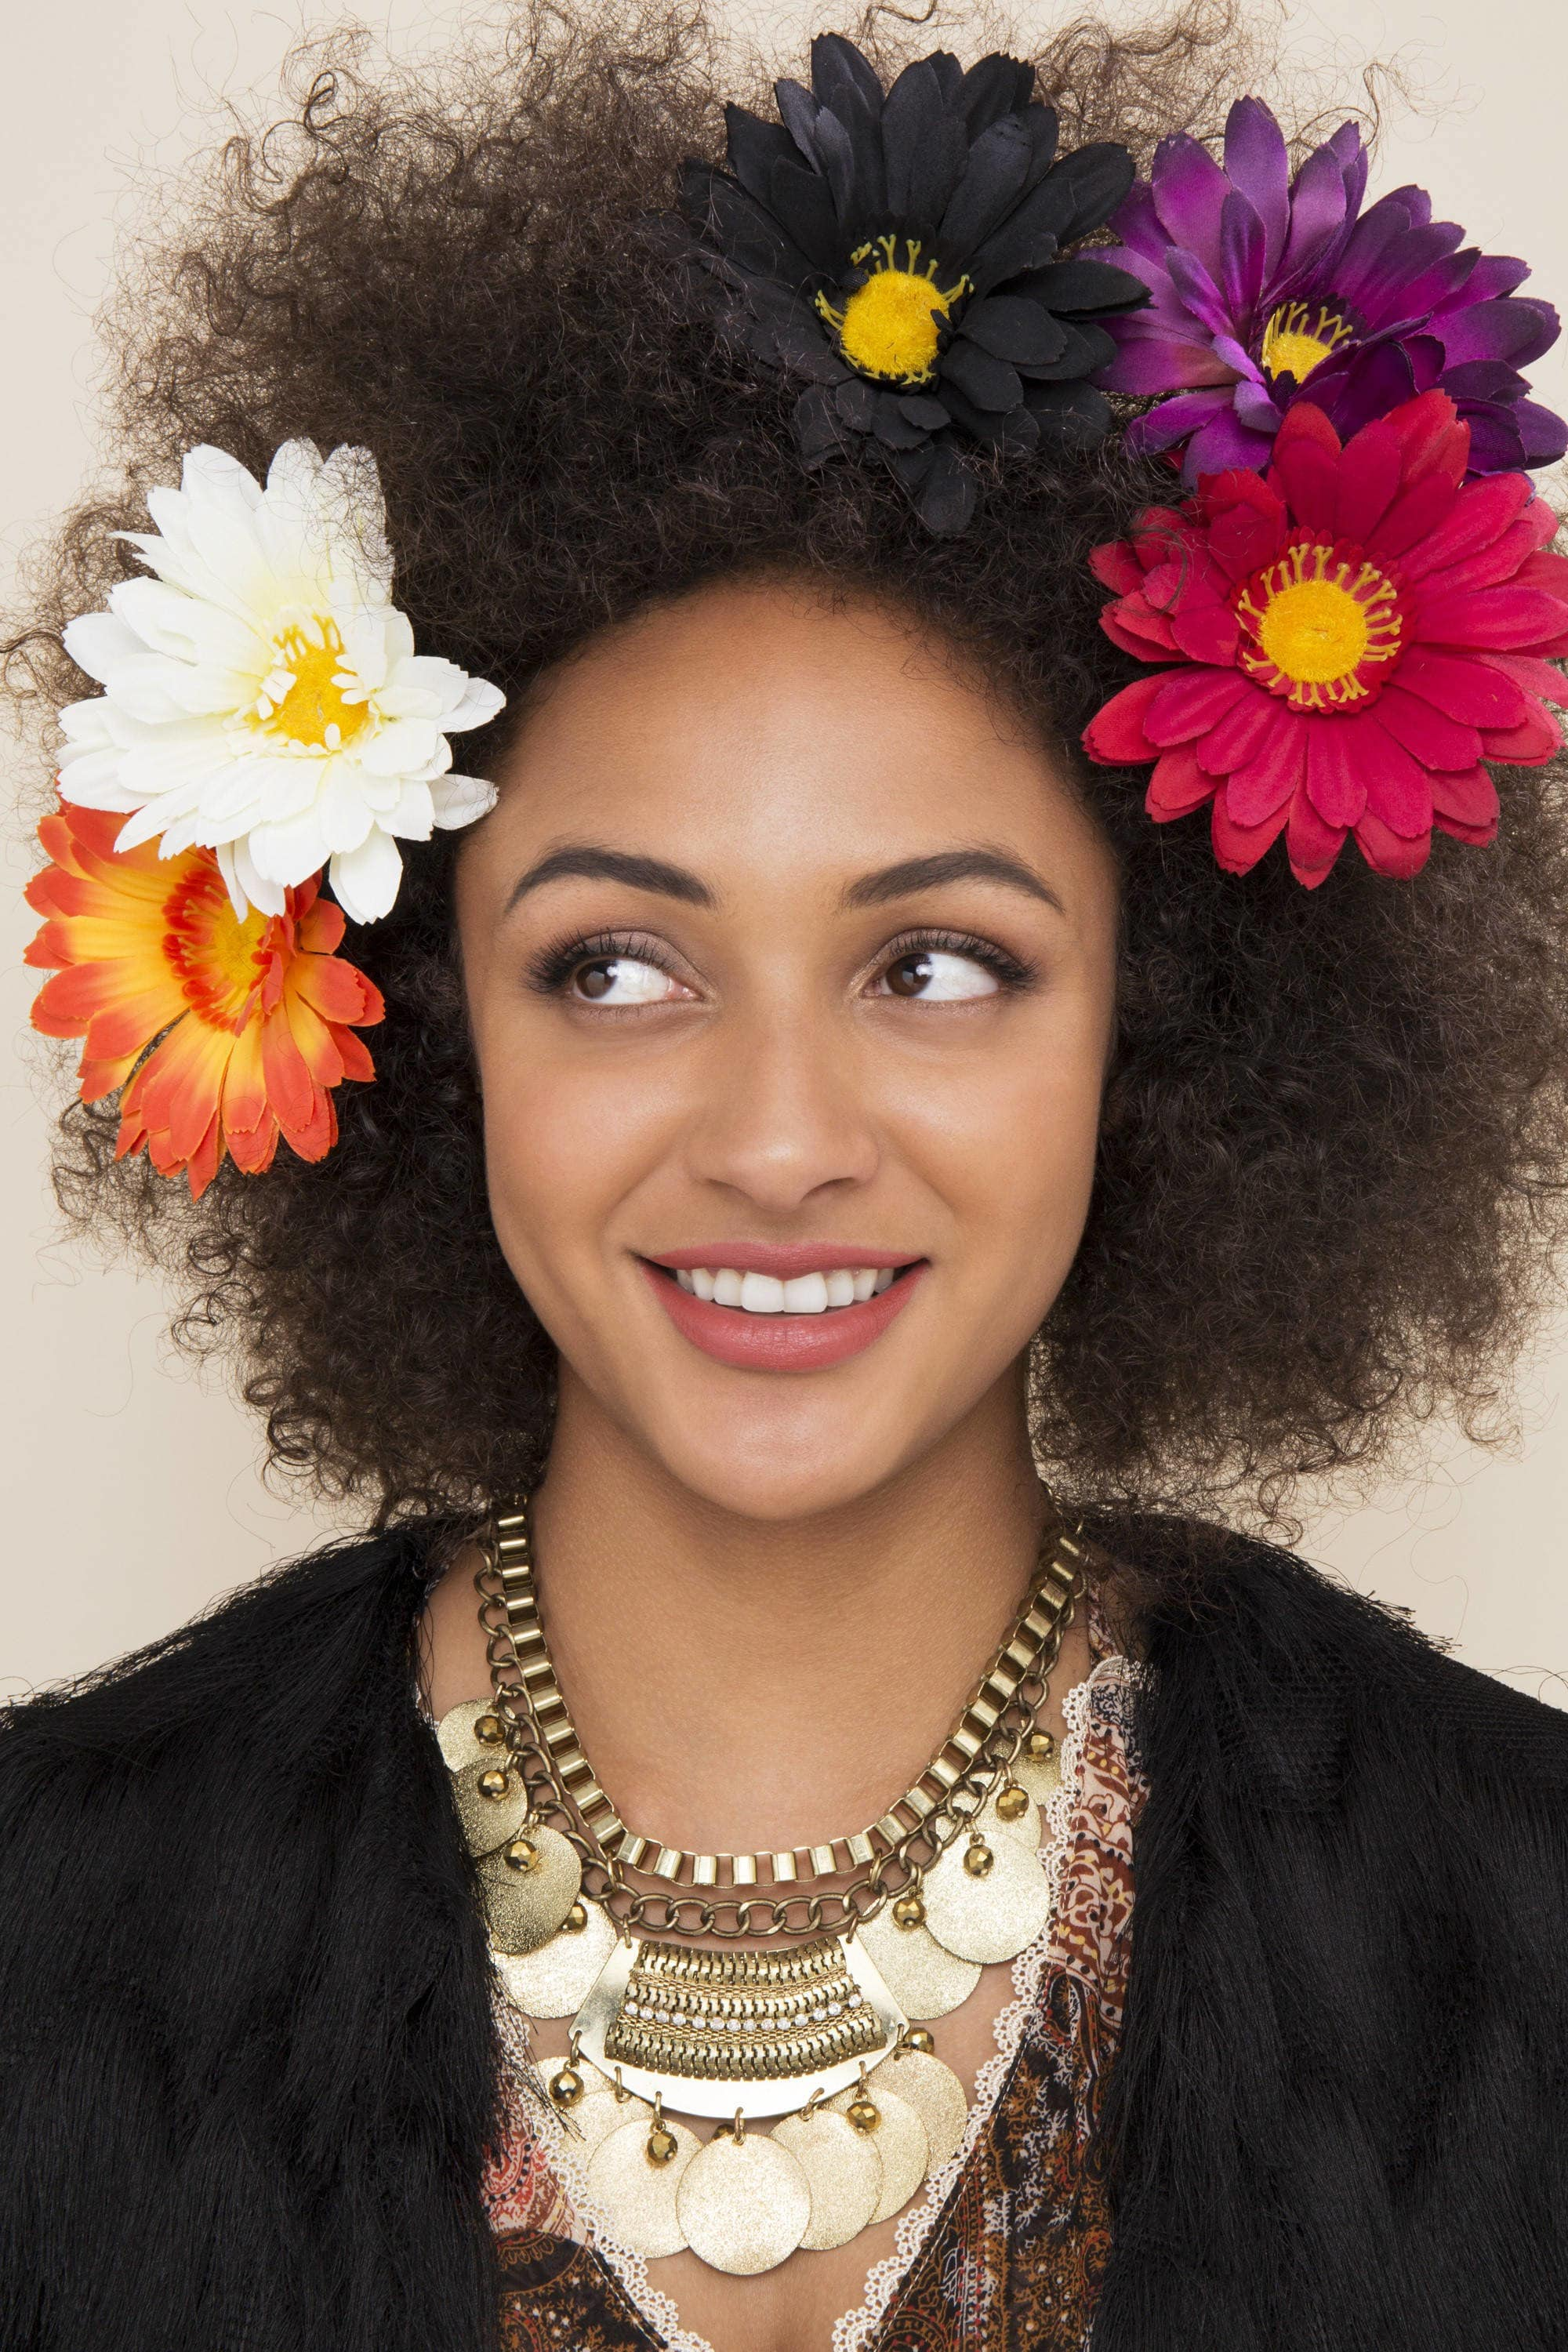 hippie hairstyles flowers and 'fro